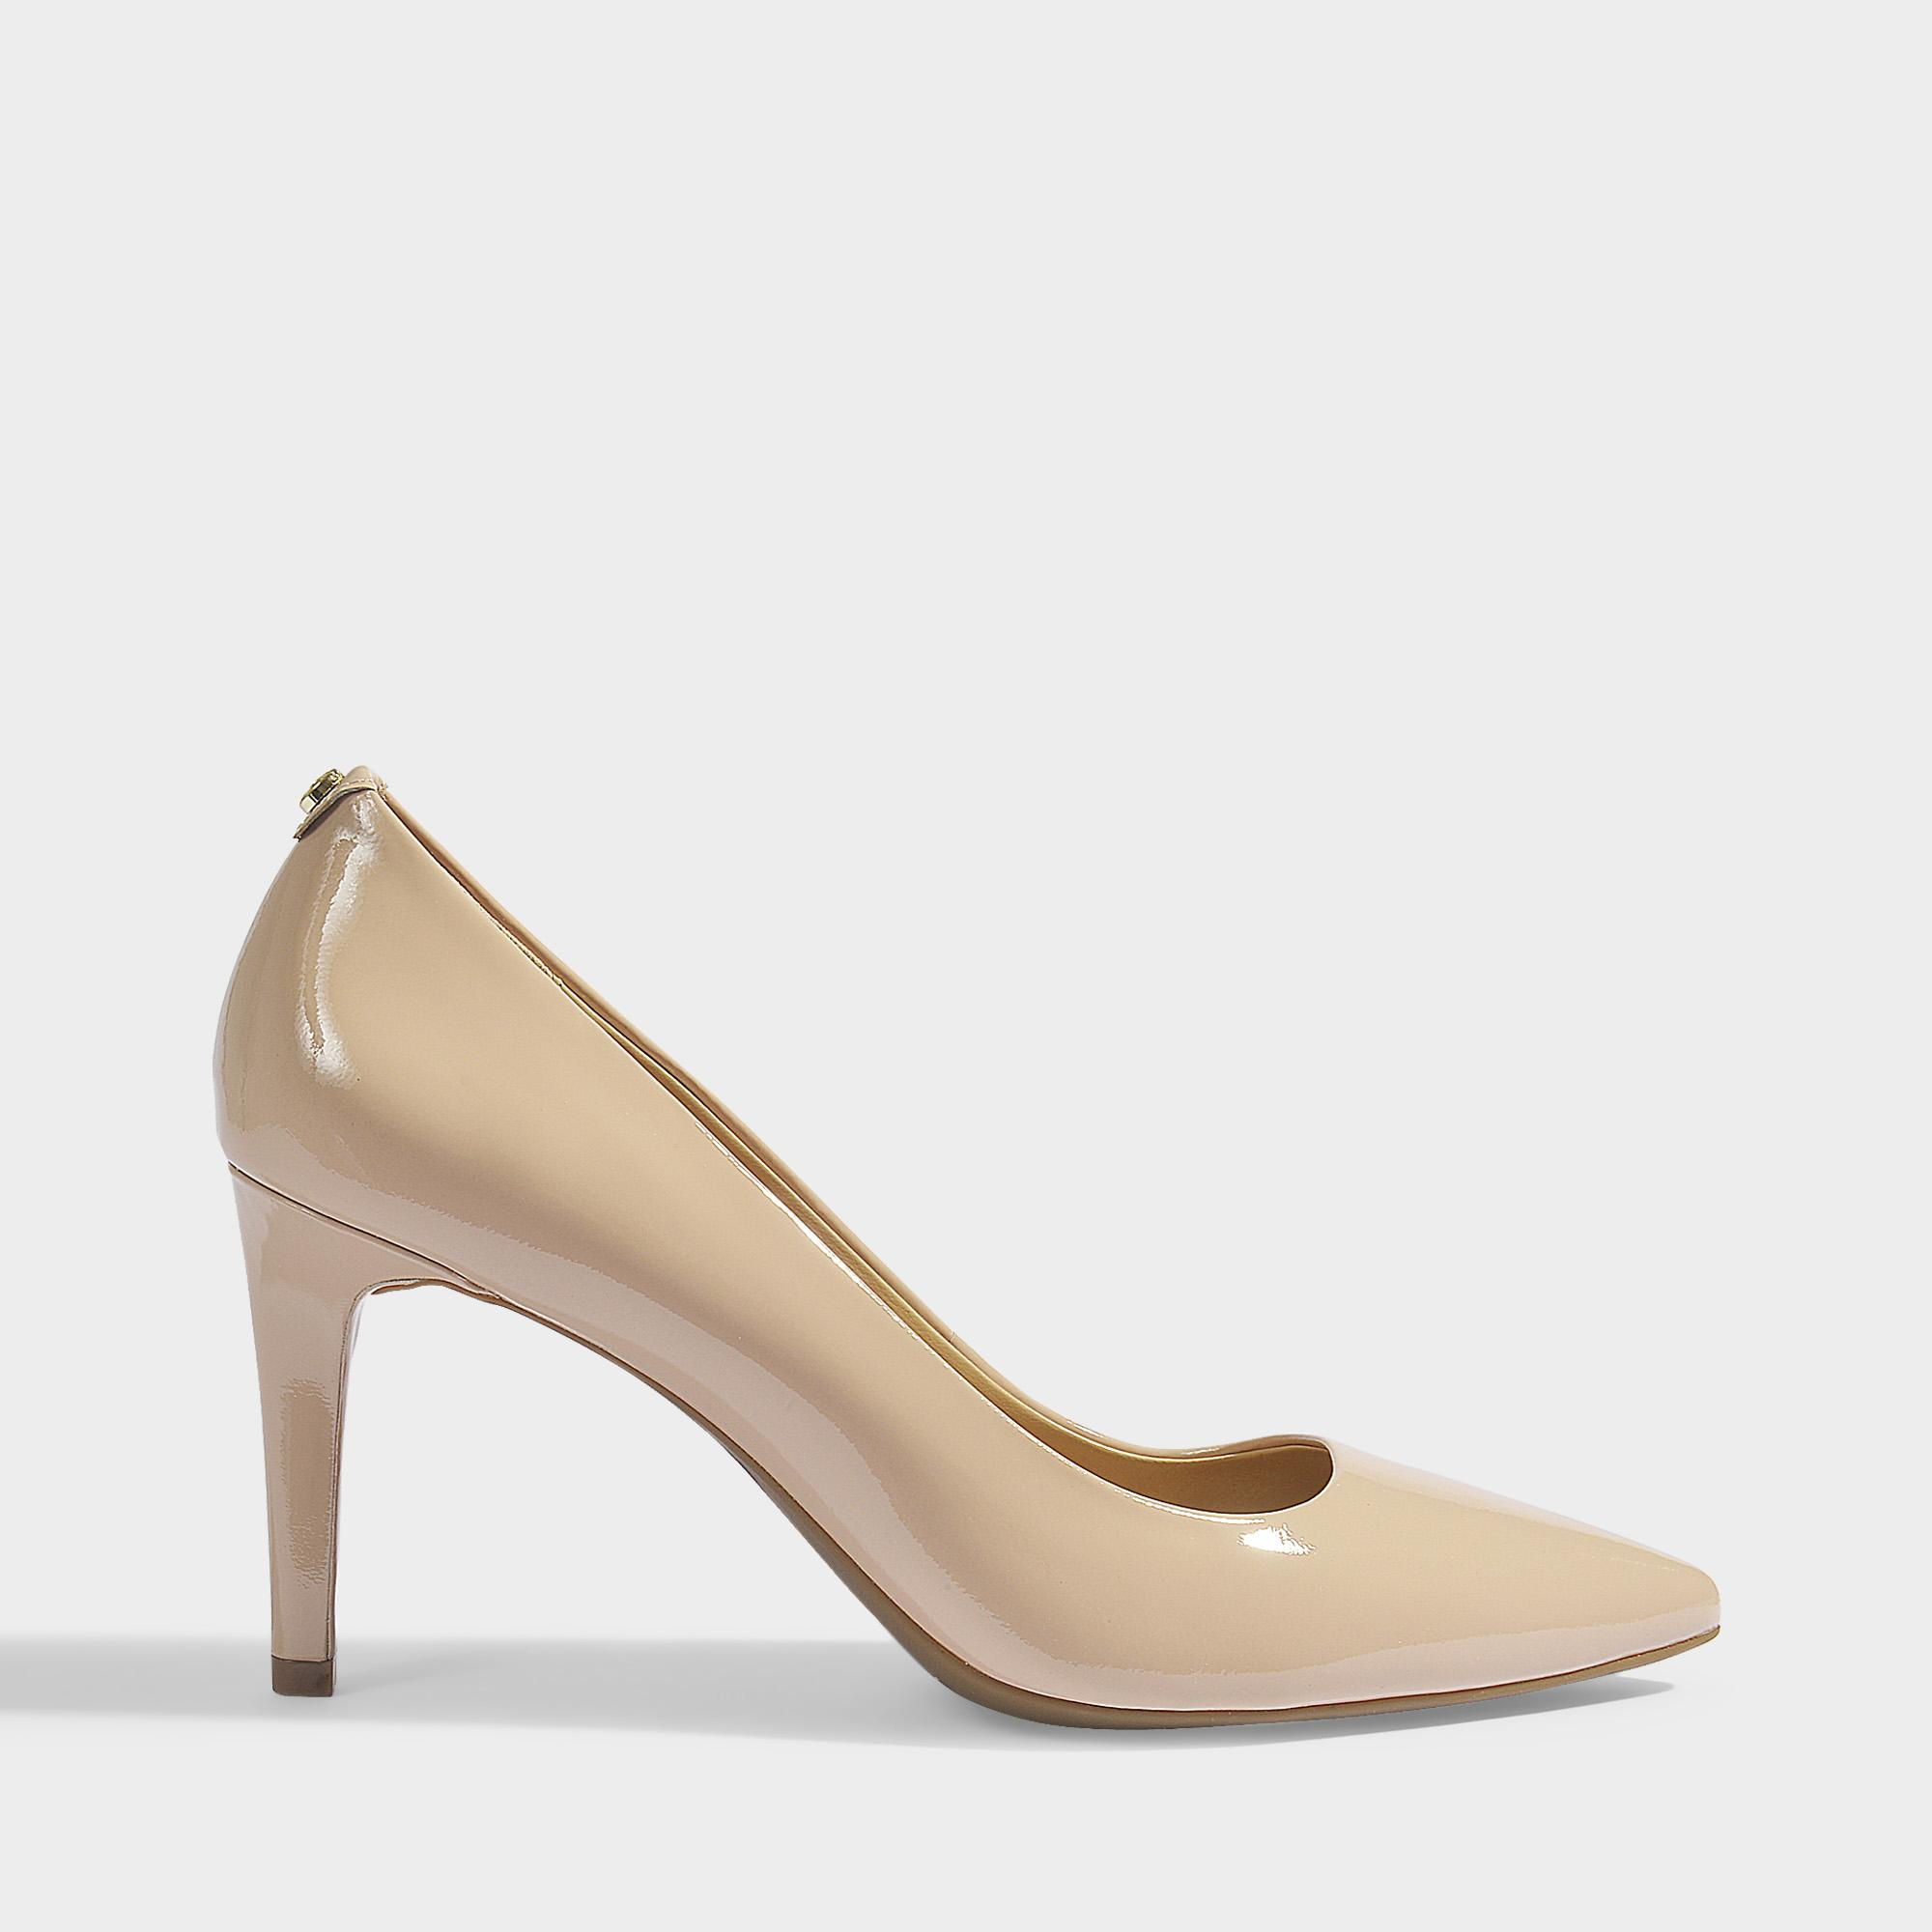 a3cc2a288 MICHAEL Michael Kors - Pink Dorothy Flex Pumps In Light Blush Patent Leather  - Lyst. View fullscreen